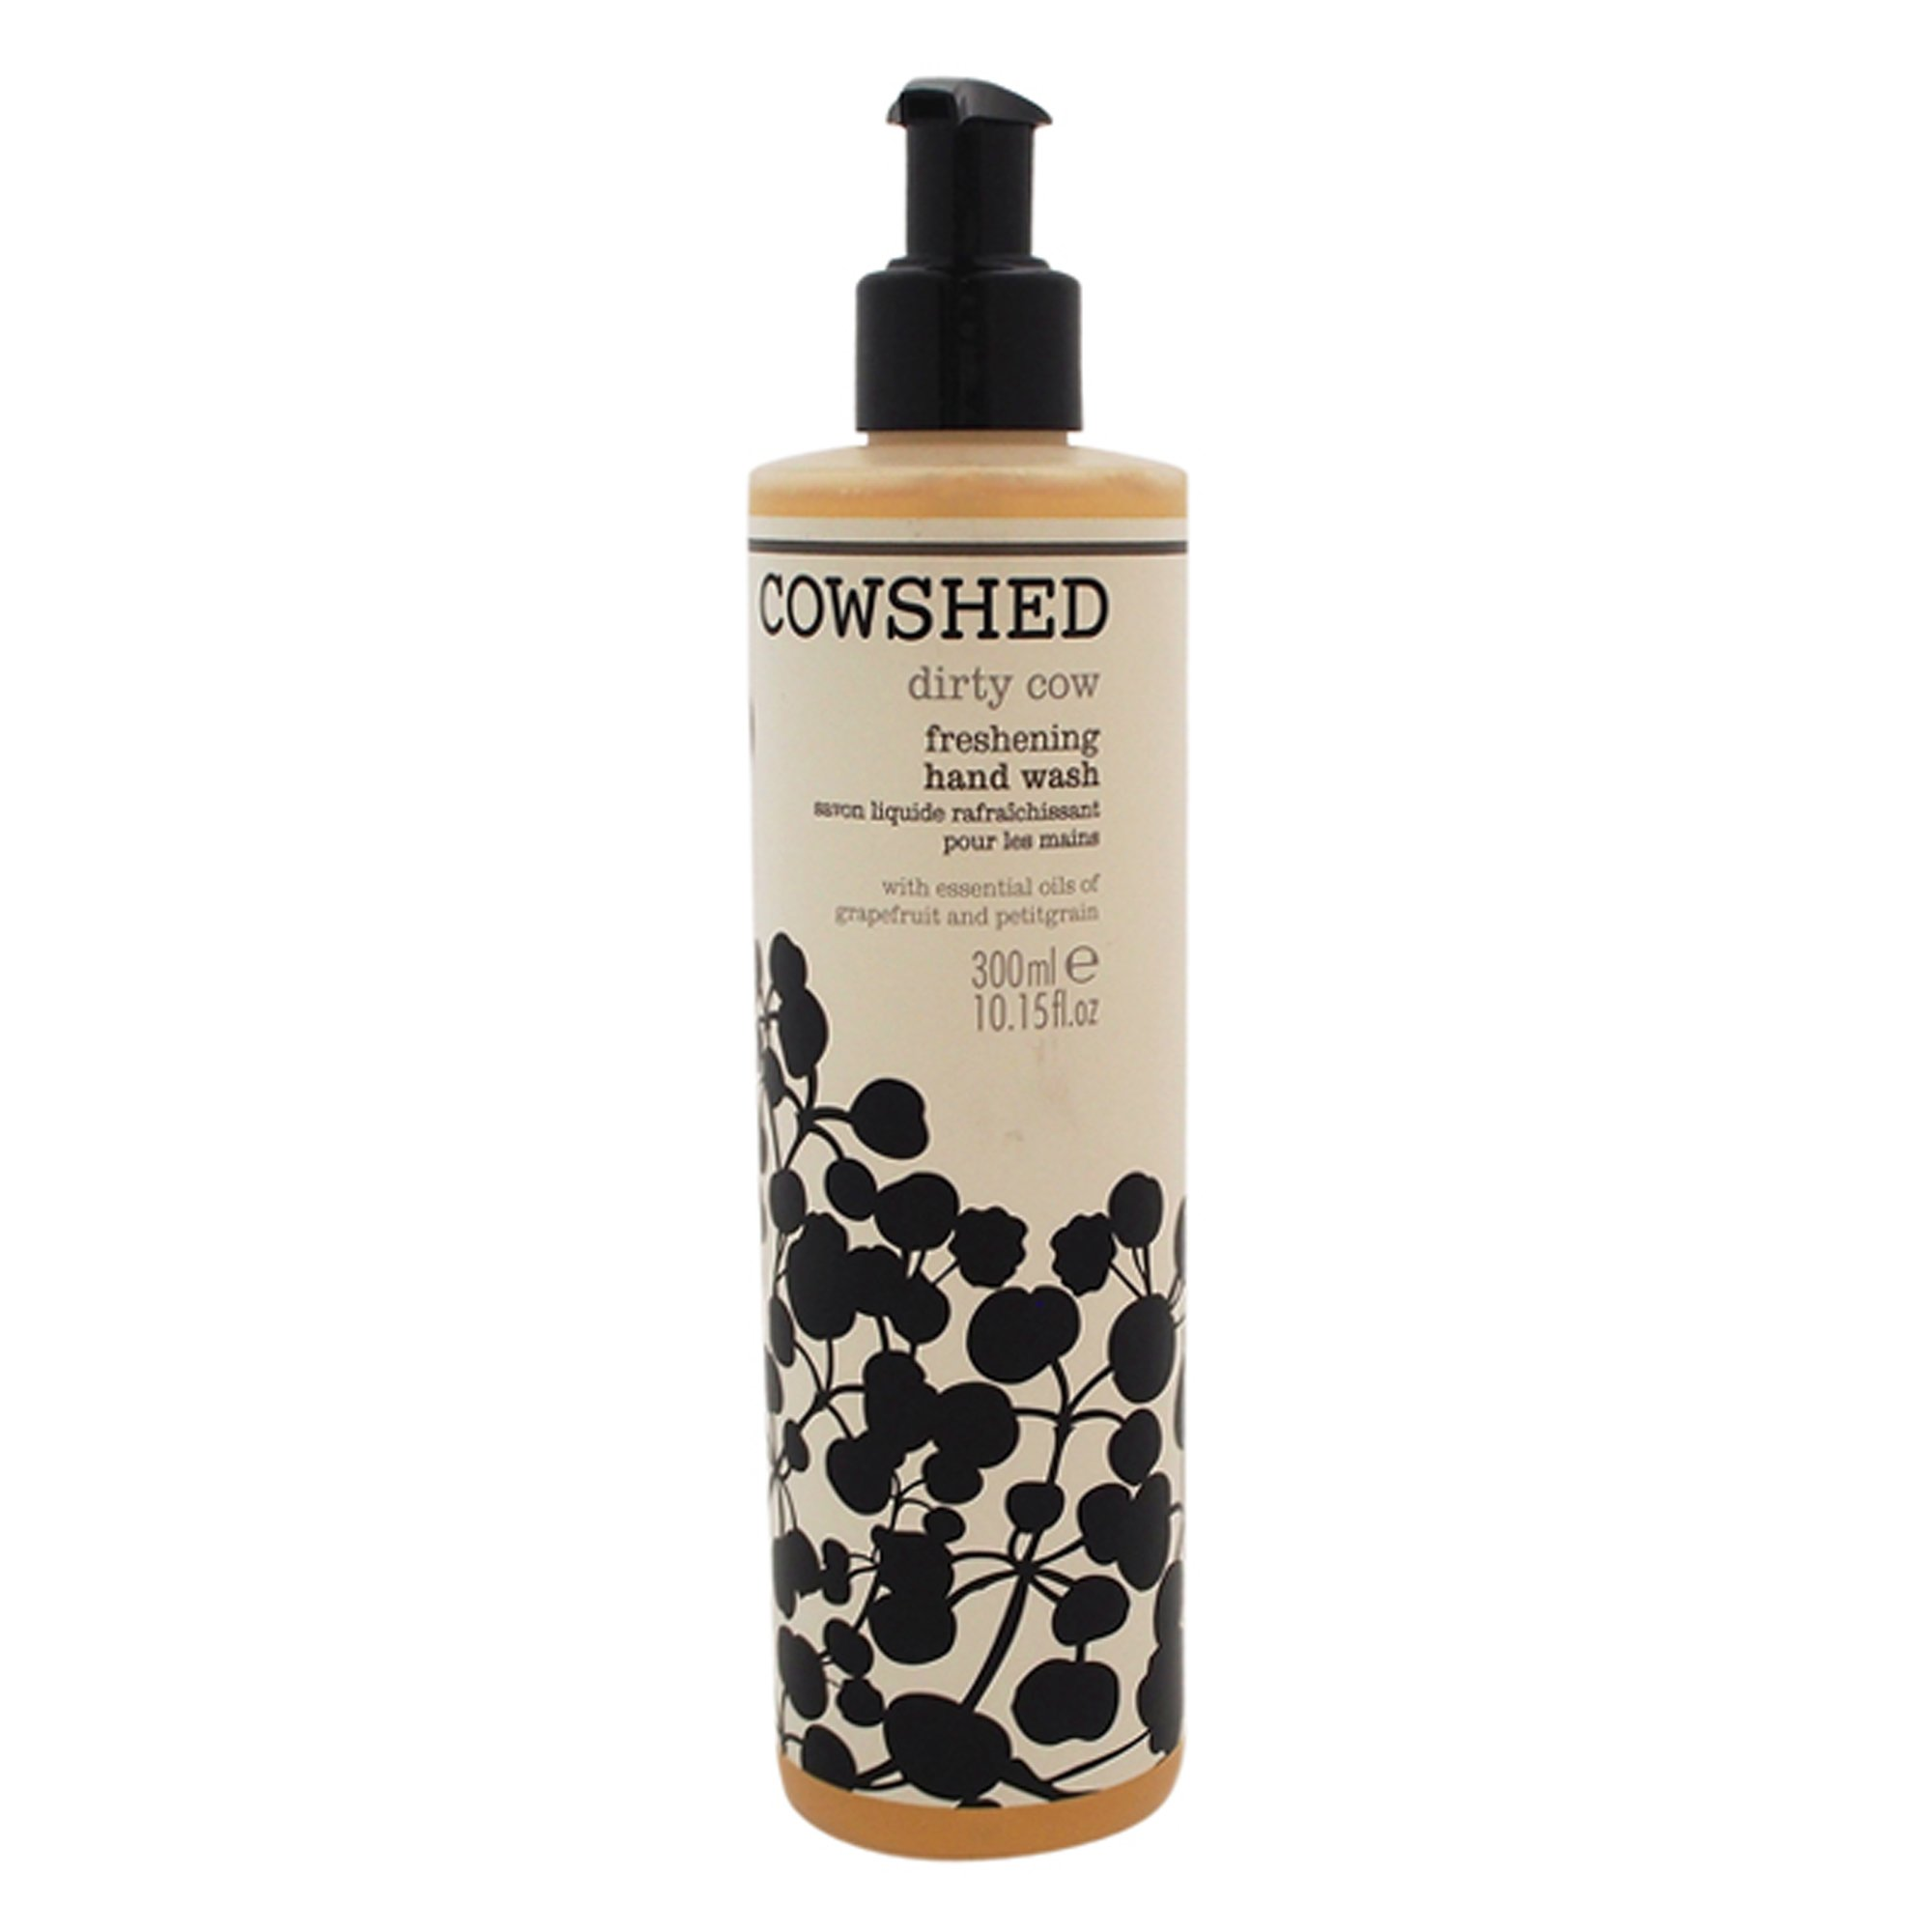 Cowshed Dirty Cow Freshening Hand Wash for Women, 10.15 Ounce